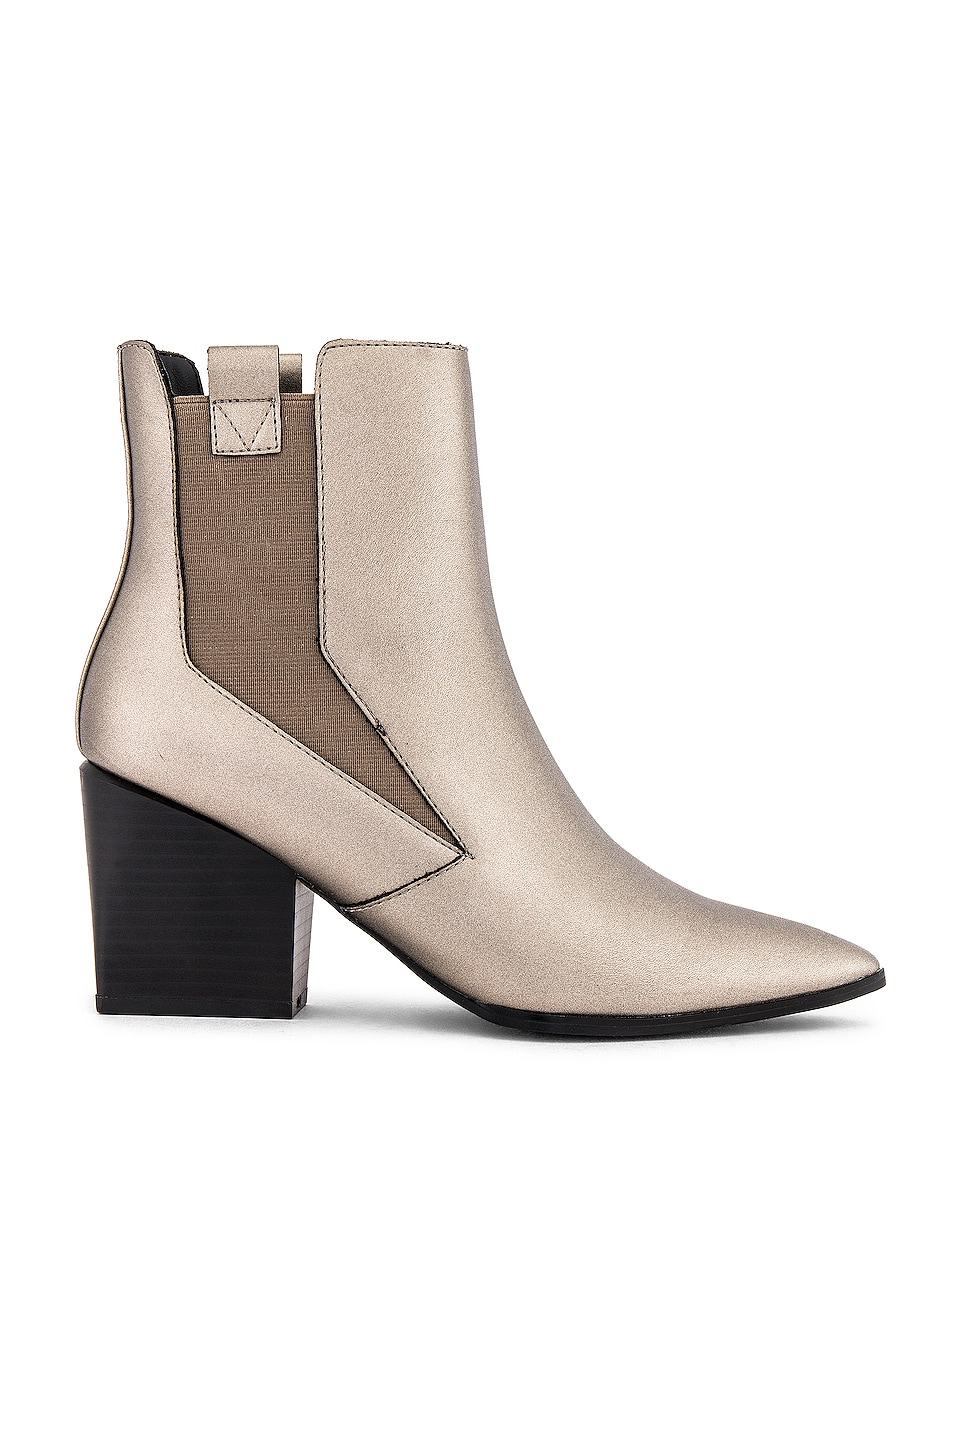 KENDALL + KYLIE Finigan Bootie in Pewter